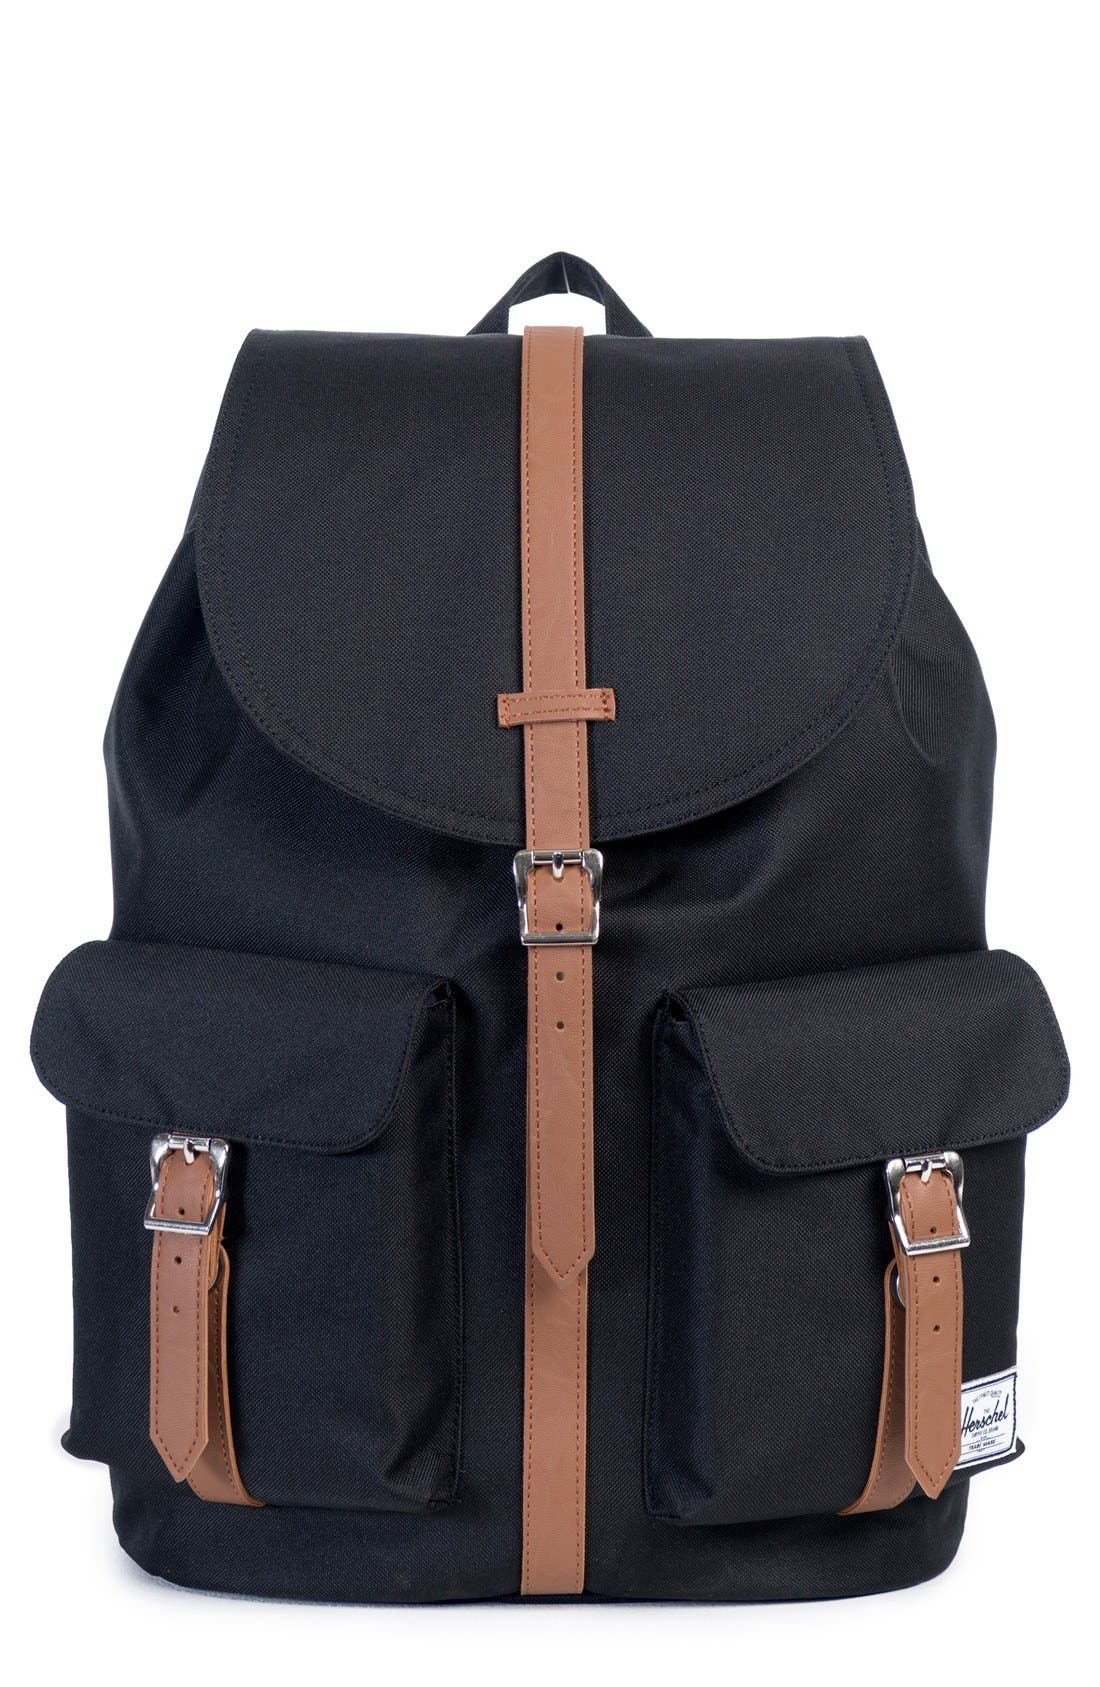 'Dawson' Backpack,                         Main,                         color, 001